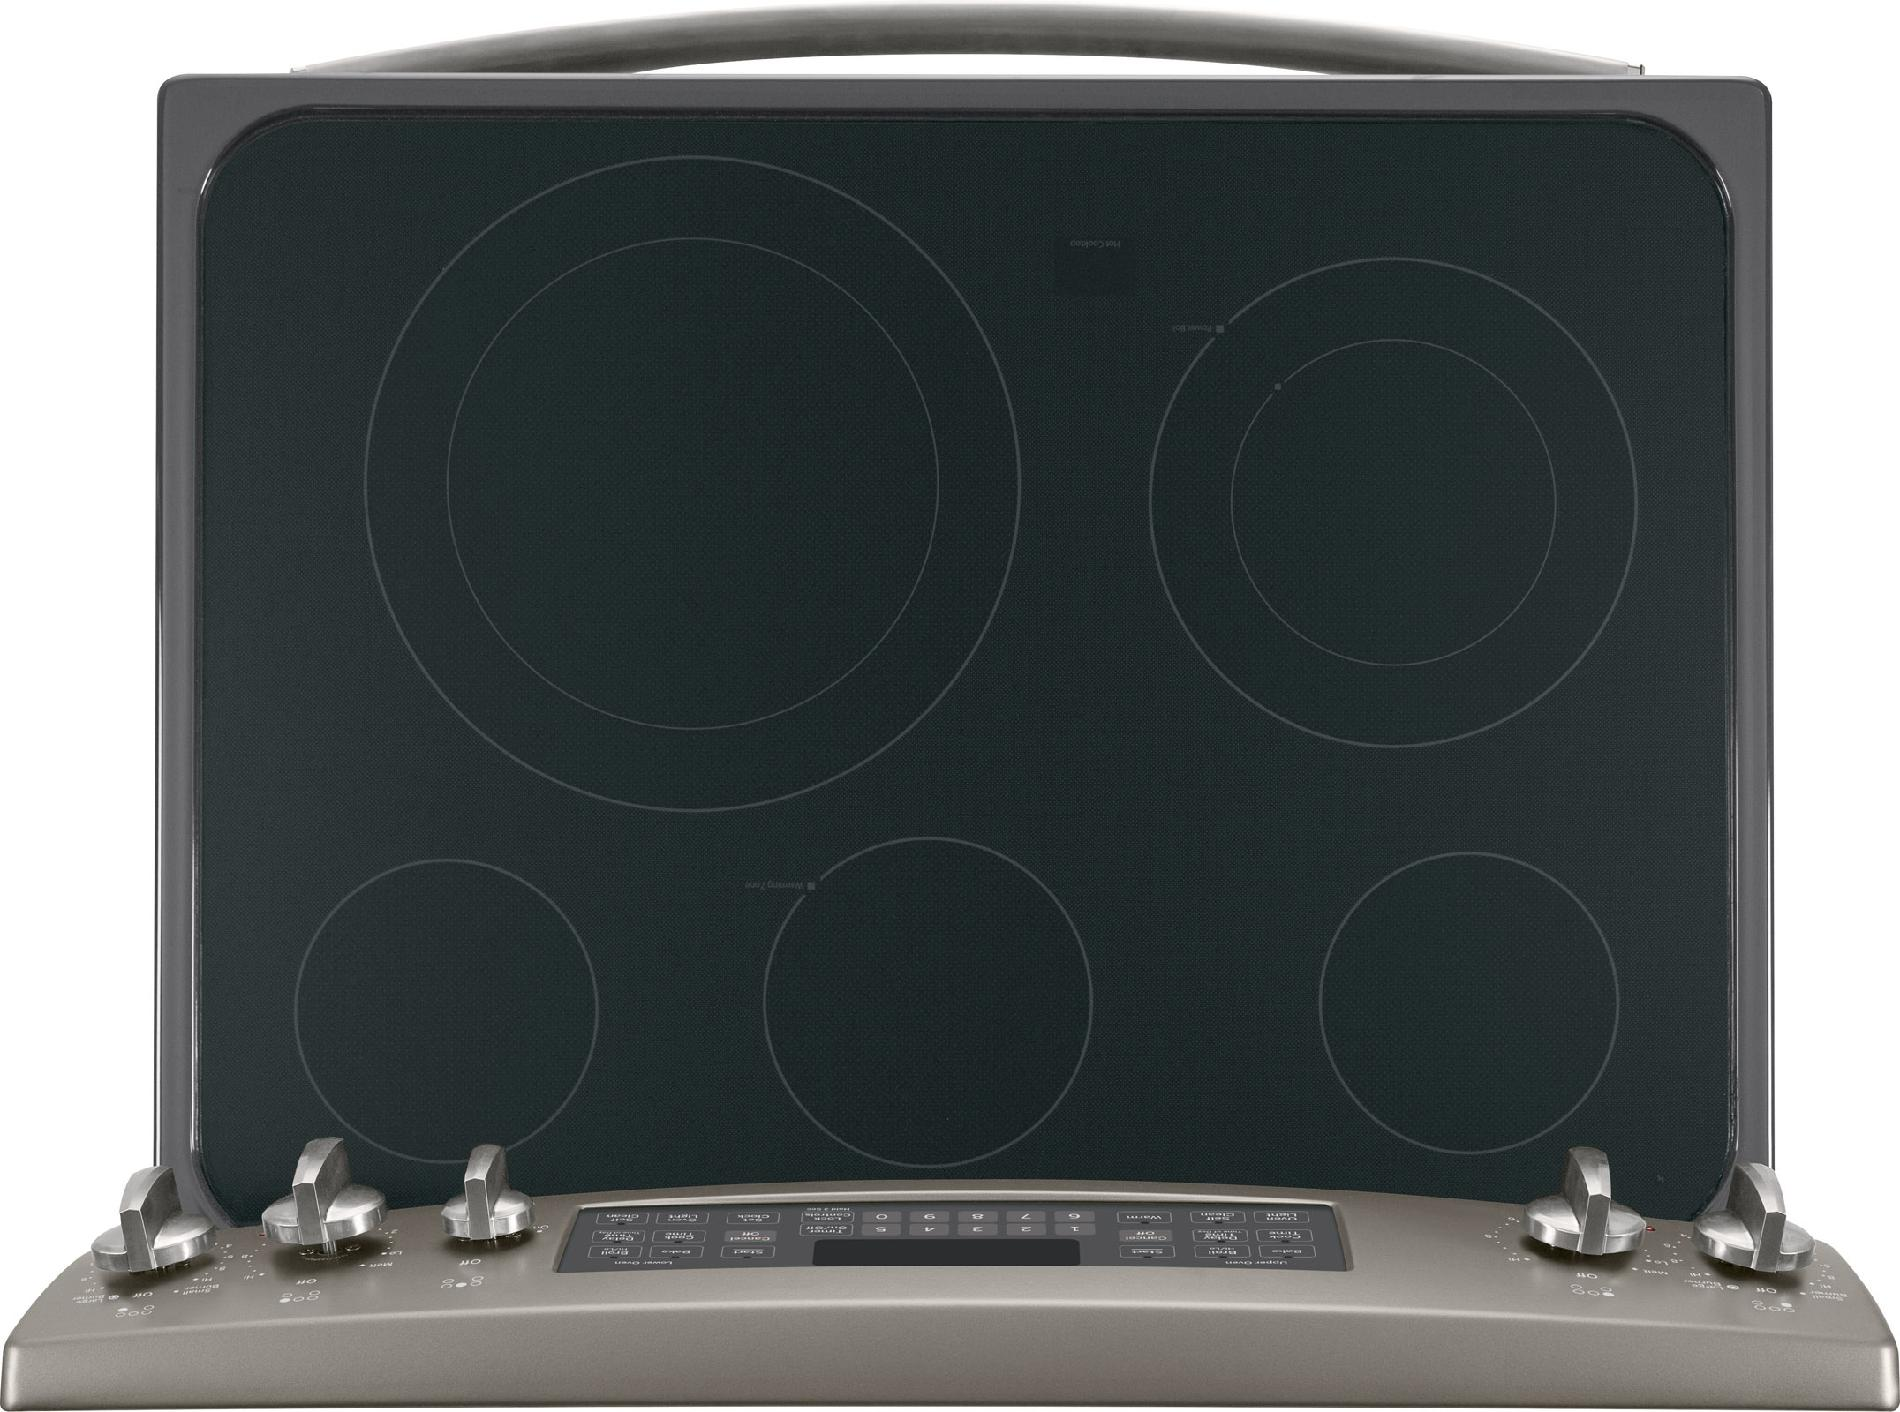 GE Appliances 6.6 cu. ft. Electric Range w/ Double Oven - Slate